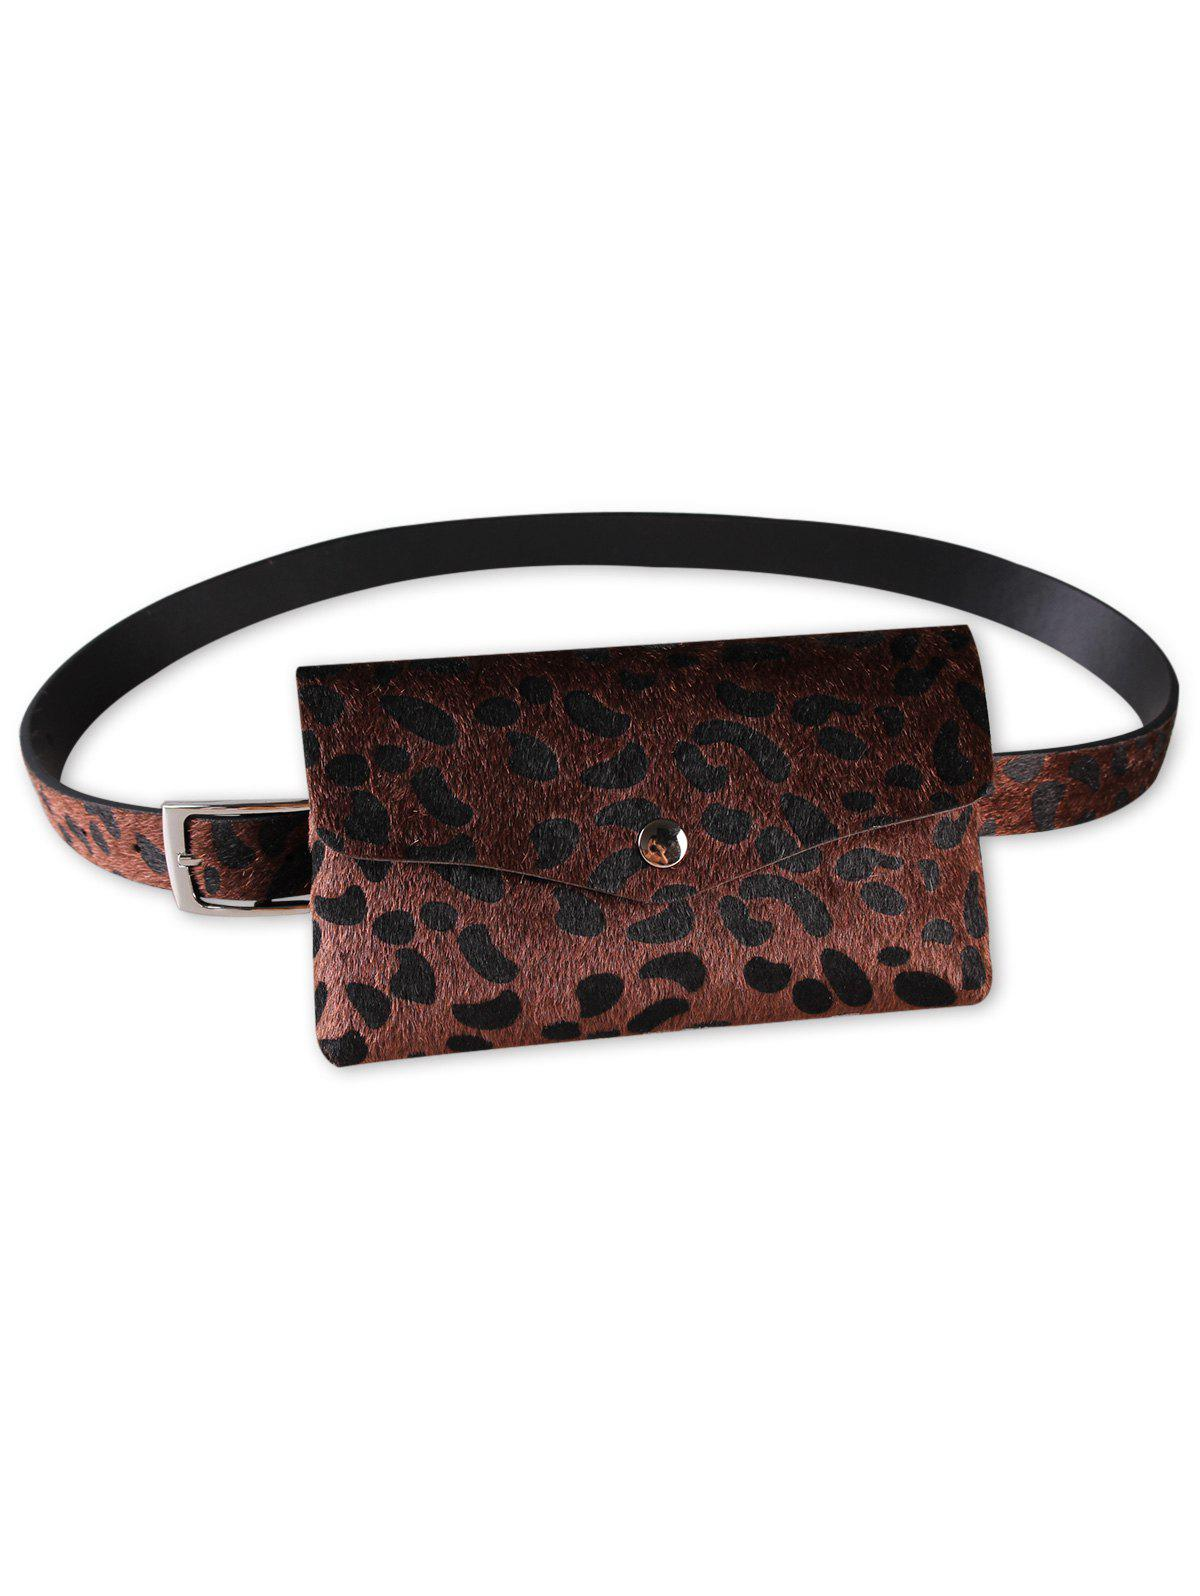 Fashion Leopard Patter Fanny Pack Waist Belt Bag